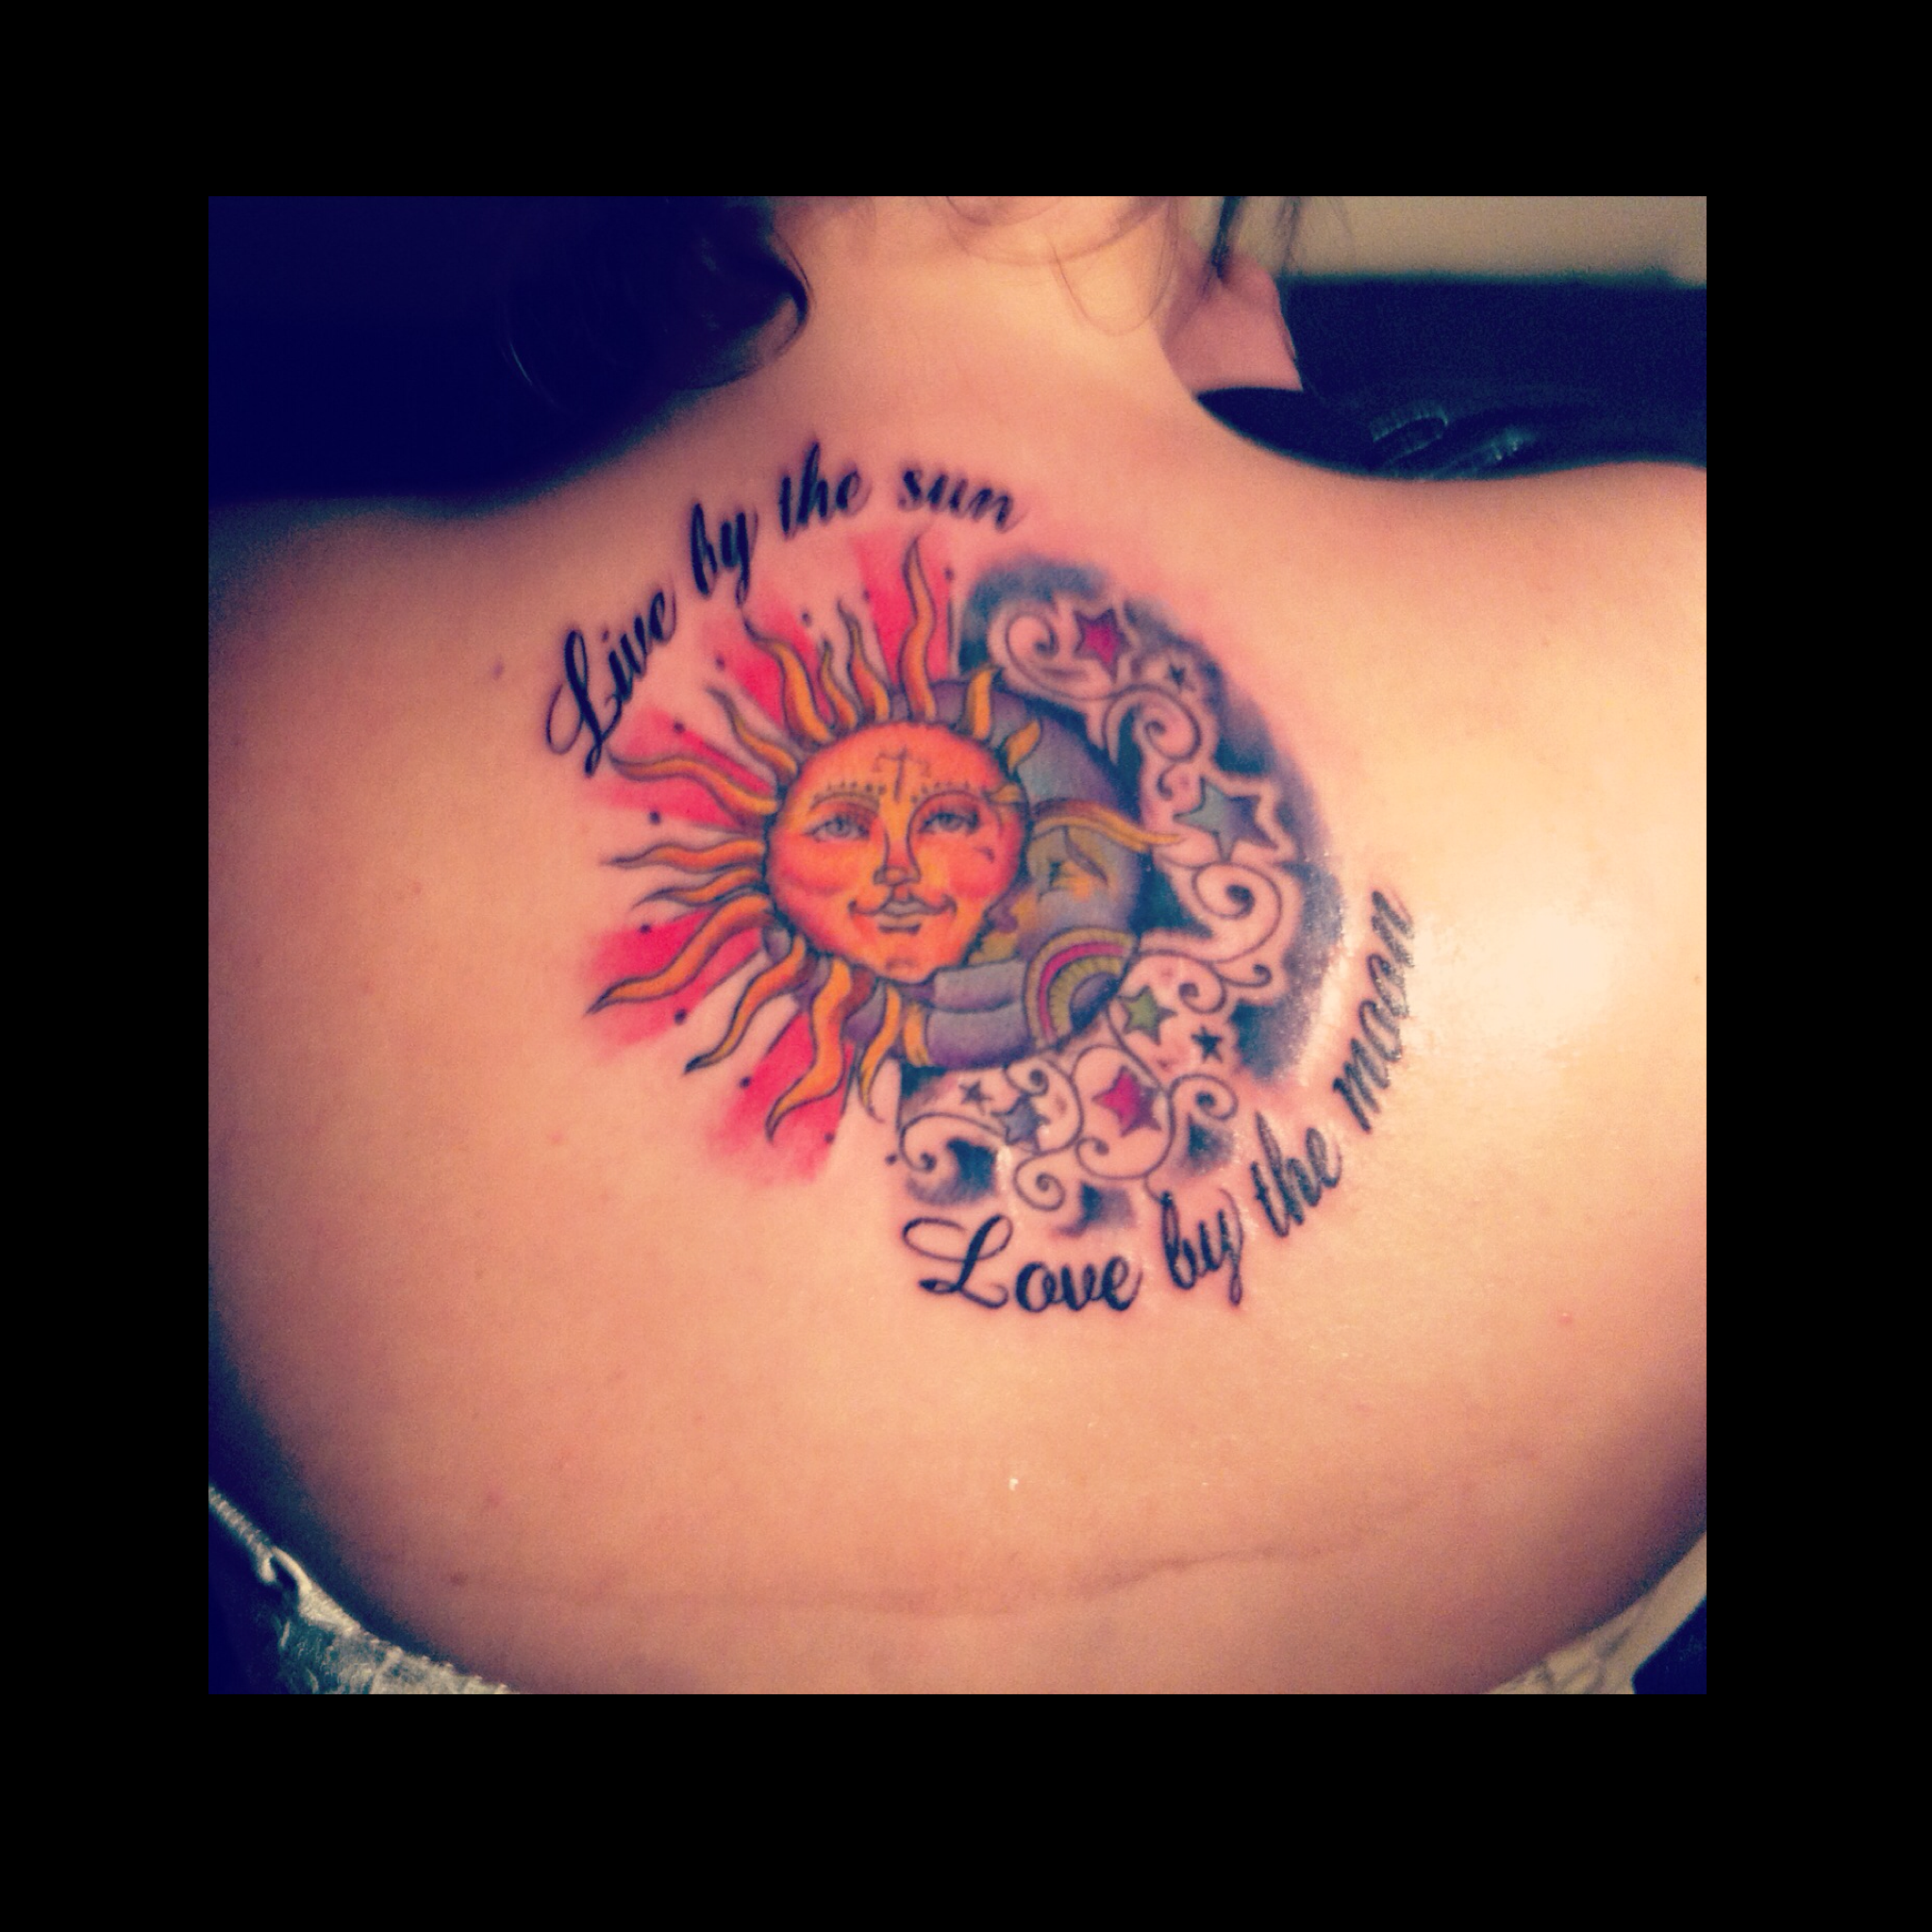 """Sun&moon Tattoo I Had Before But With The Quote """"Live By"""